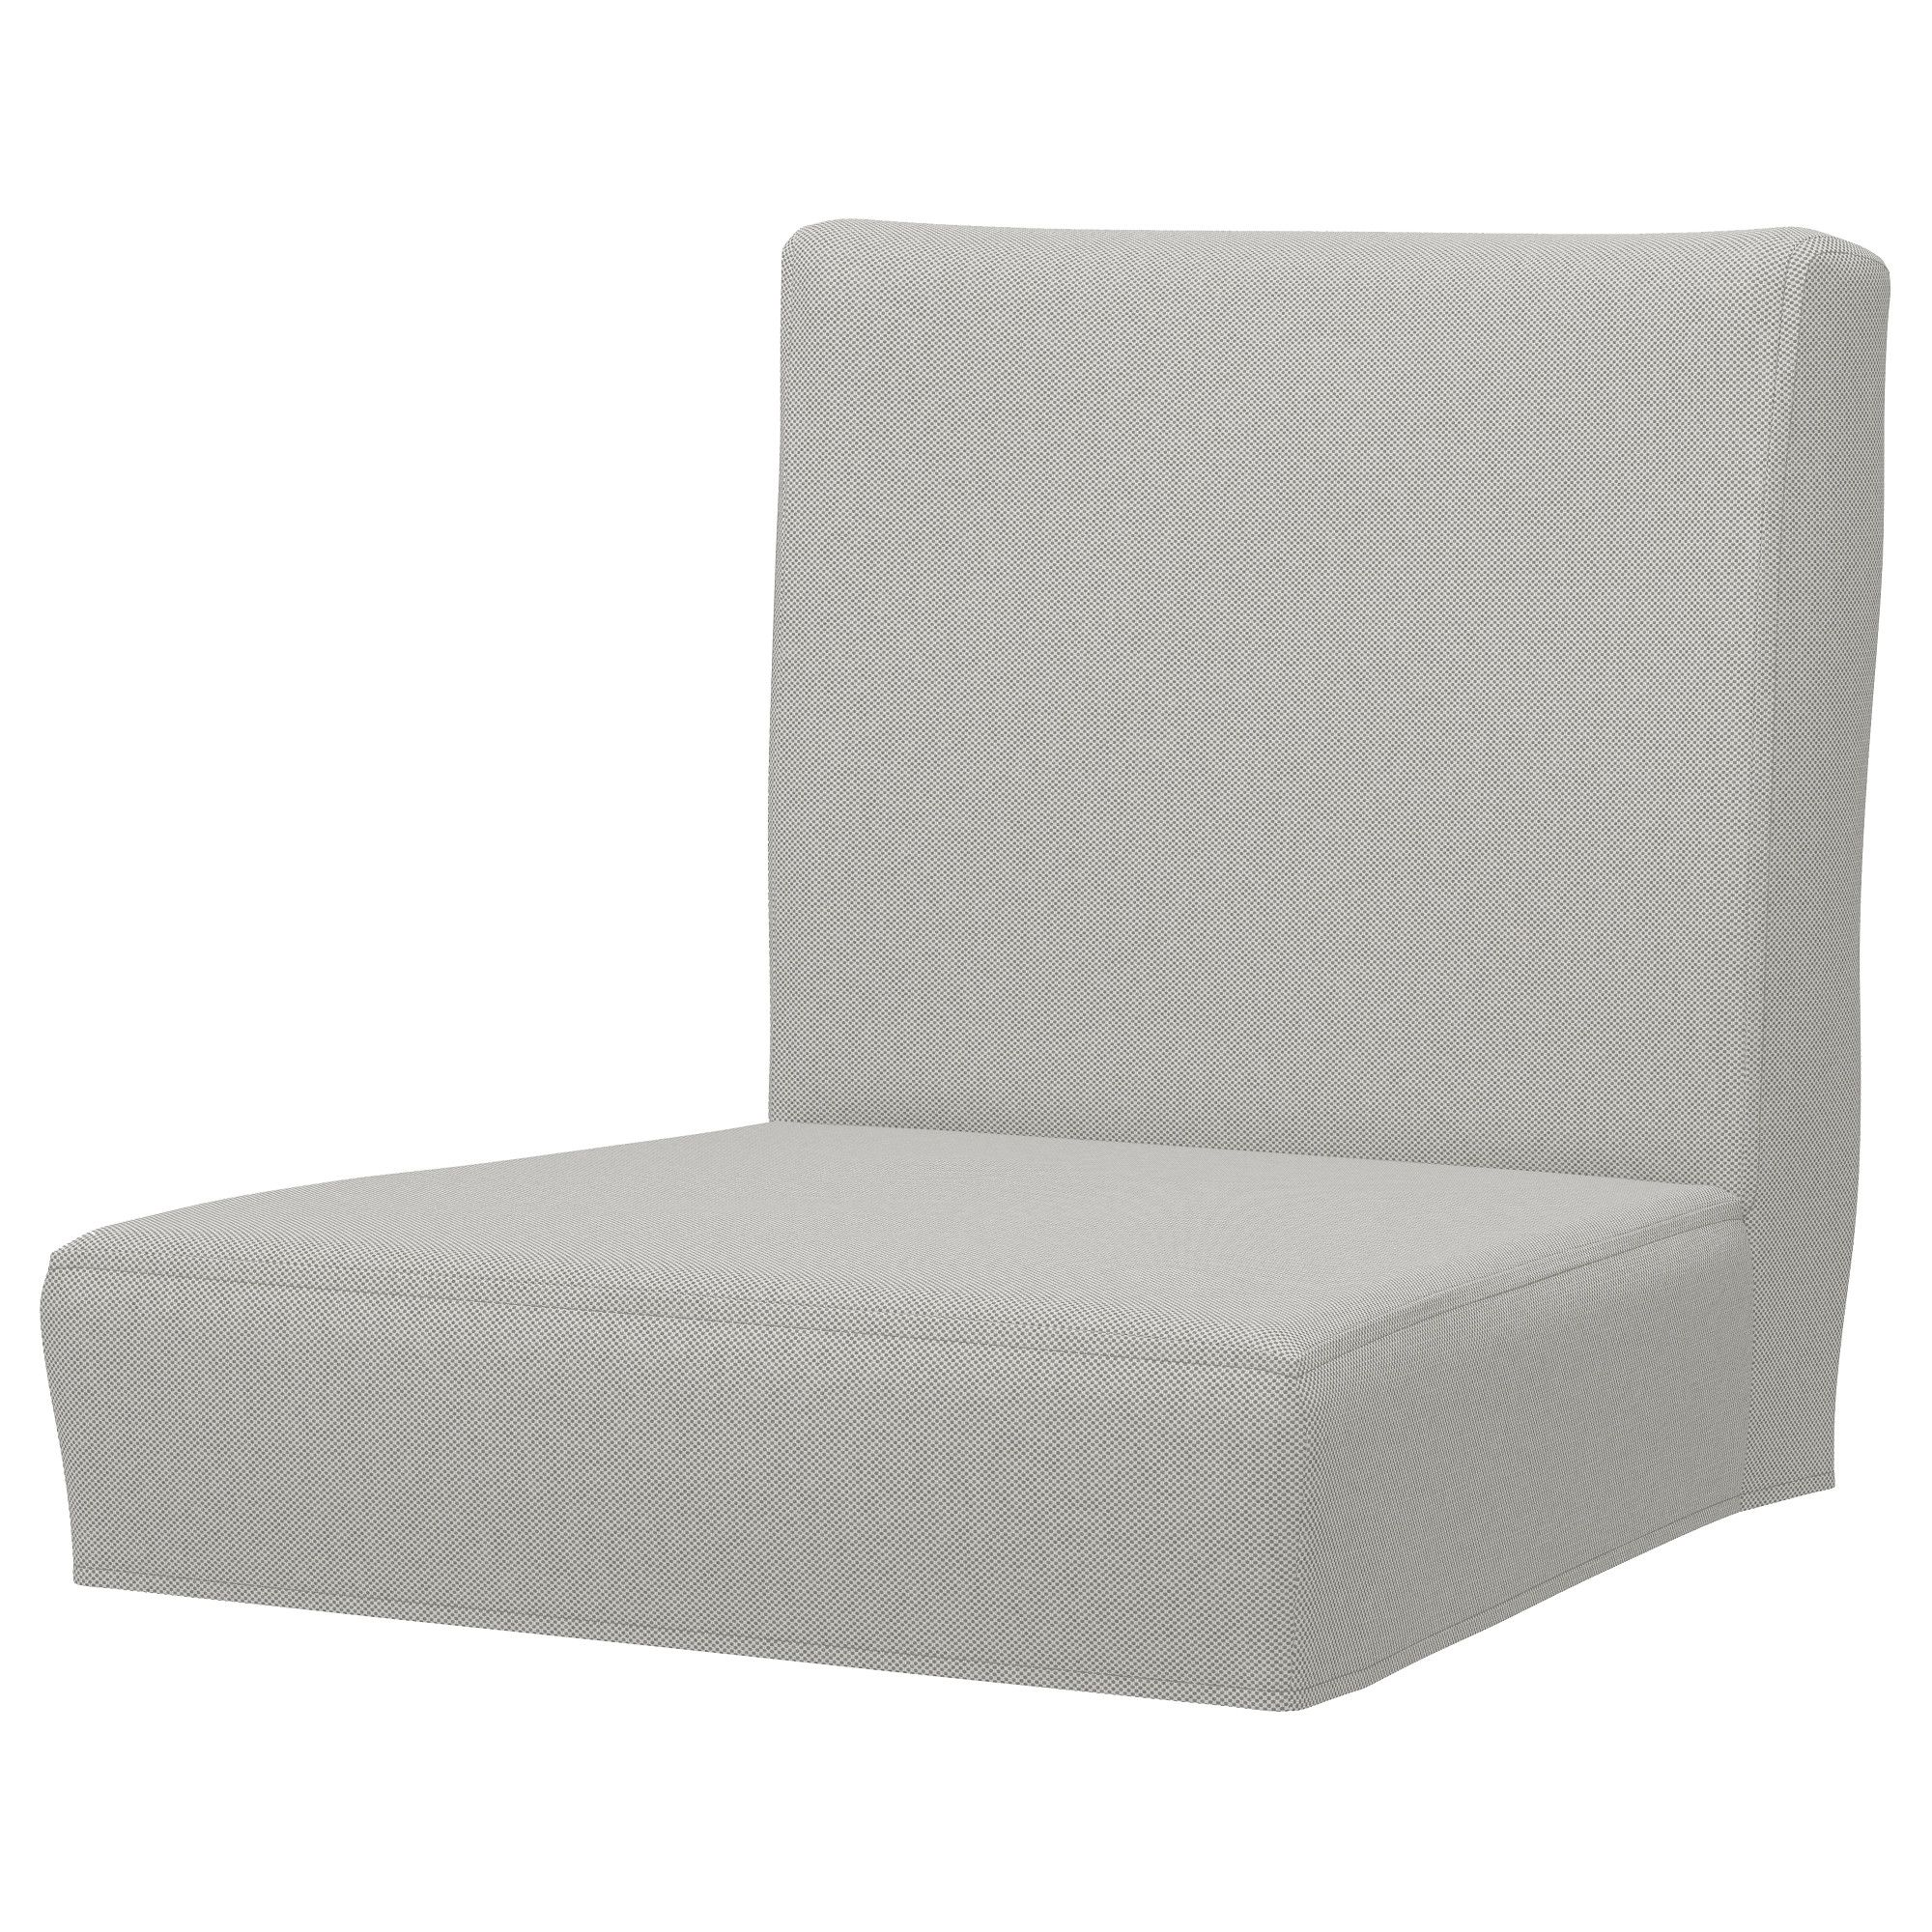 Furniture Home Furnishings Find Your Inspiration Bar Stools White Leather Dining Chairs Leather Chaise Lounge Chair